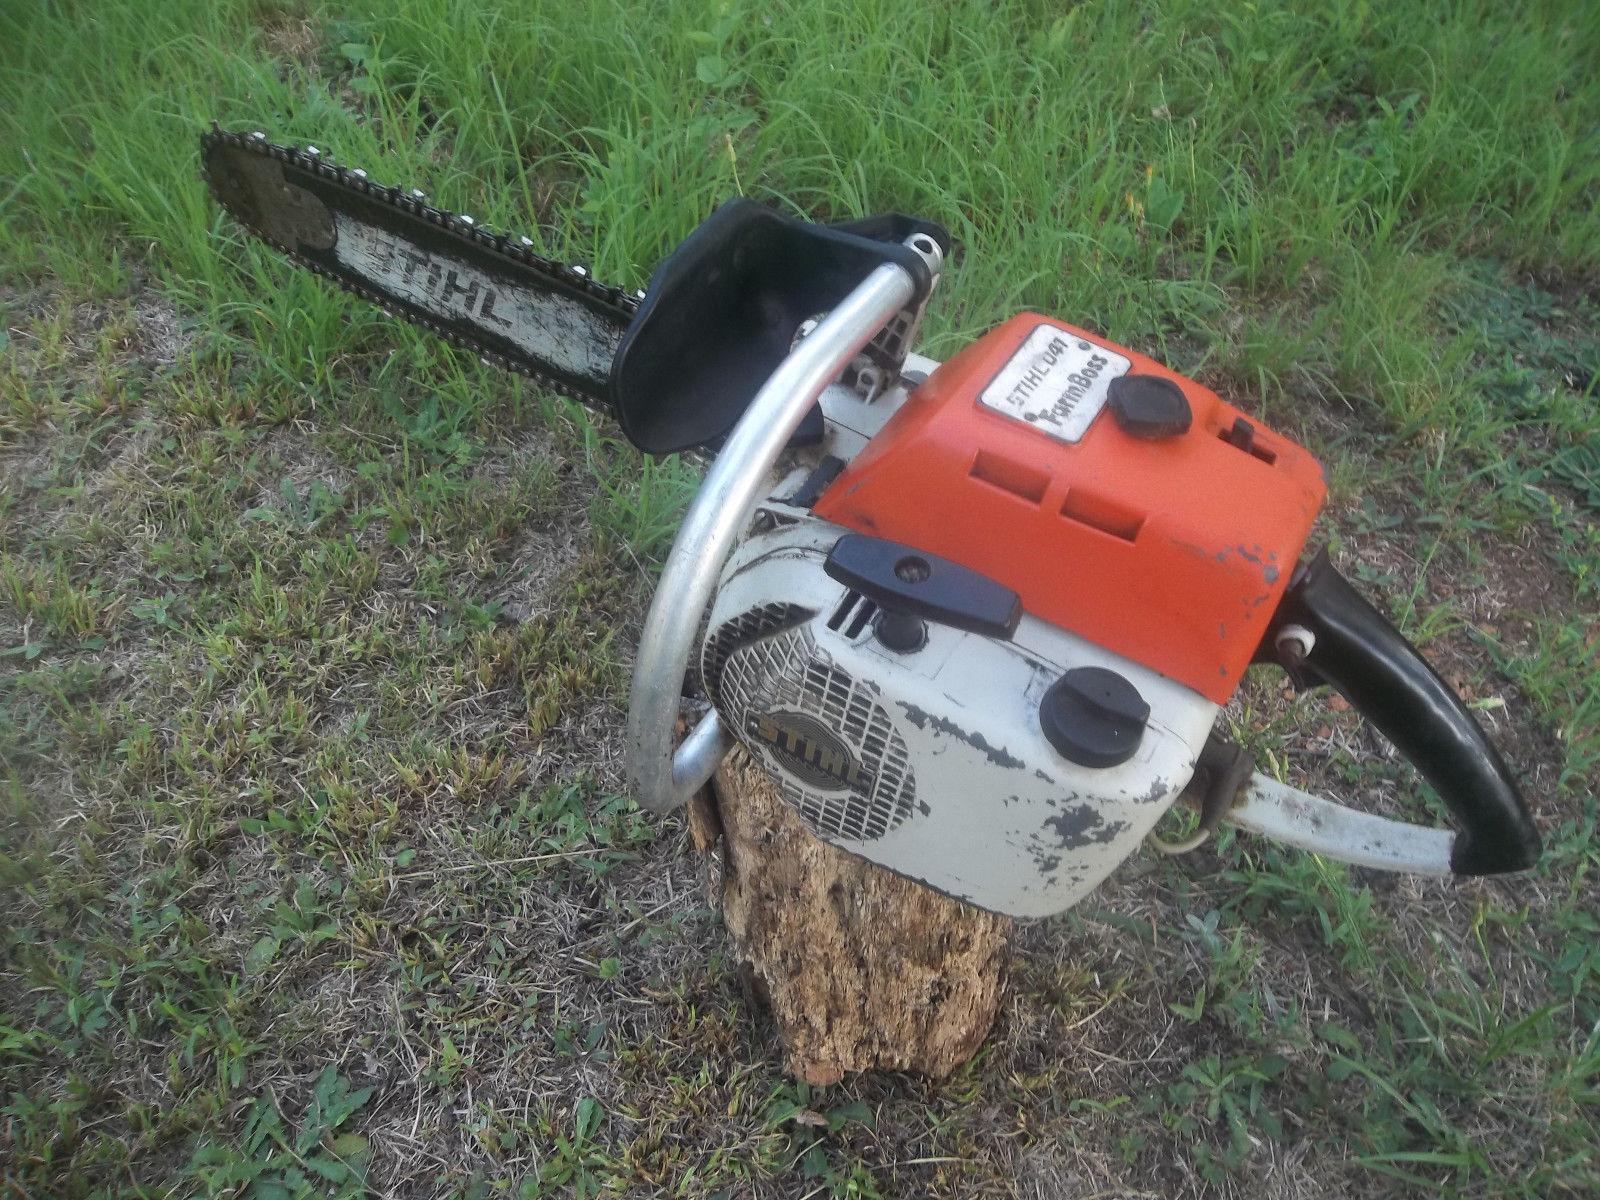 Stihl 041 farm Boss Manual